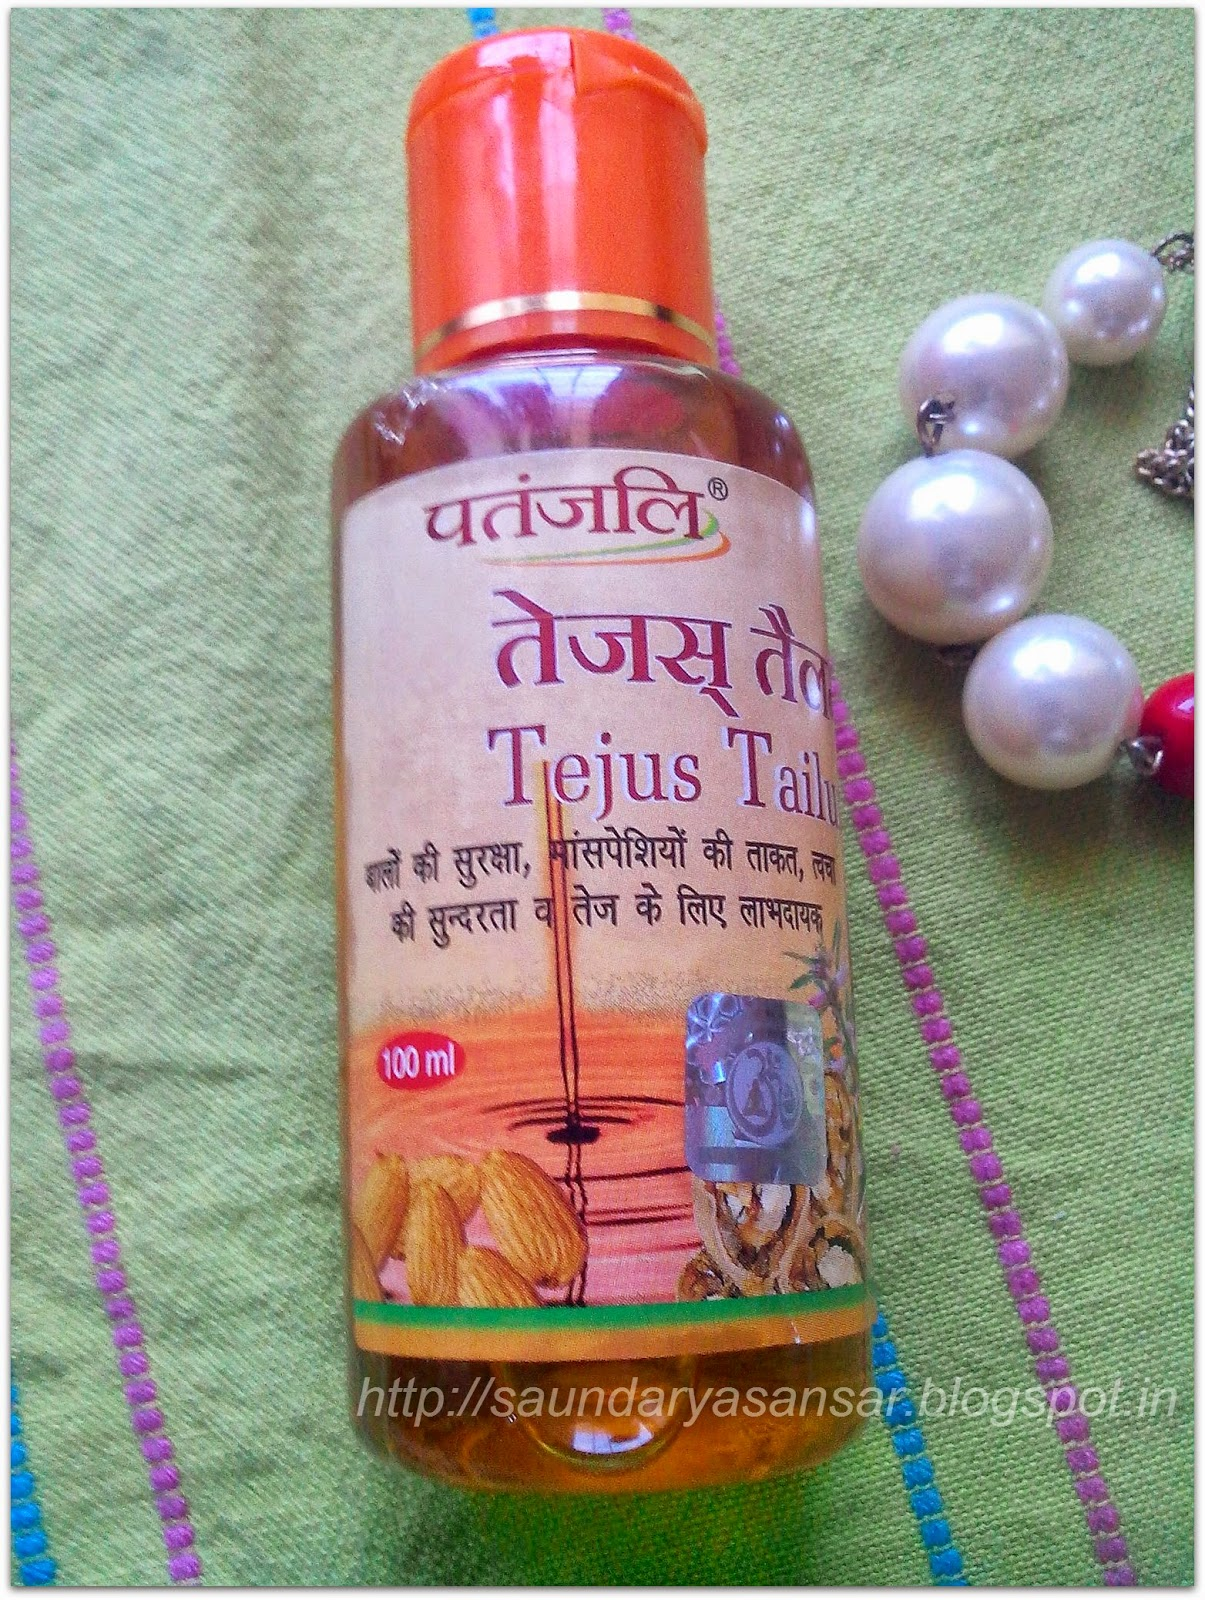 Beauty and Fashion obsessions: At Home Spa with Patanjali Tejus Tailum